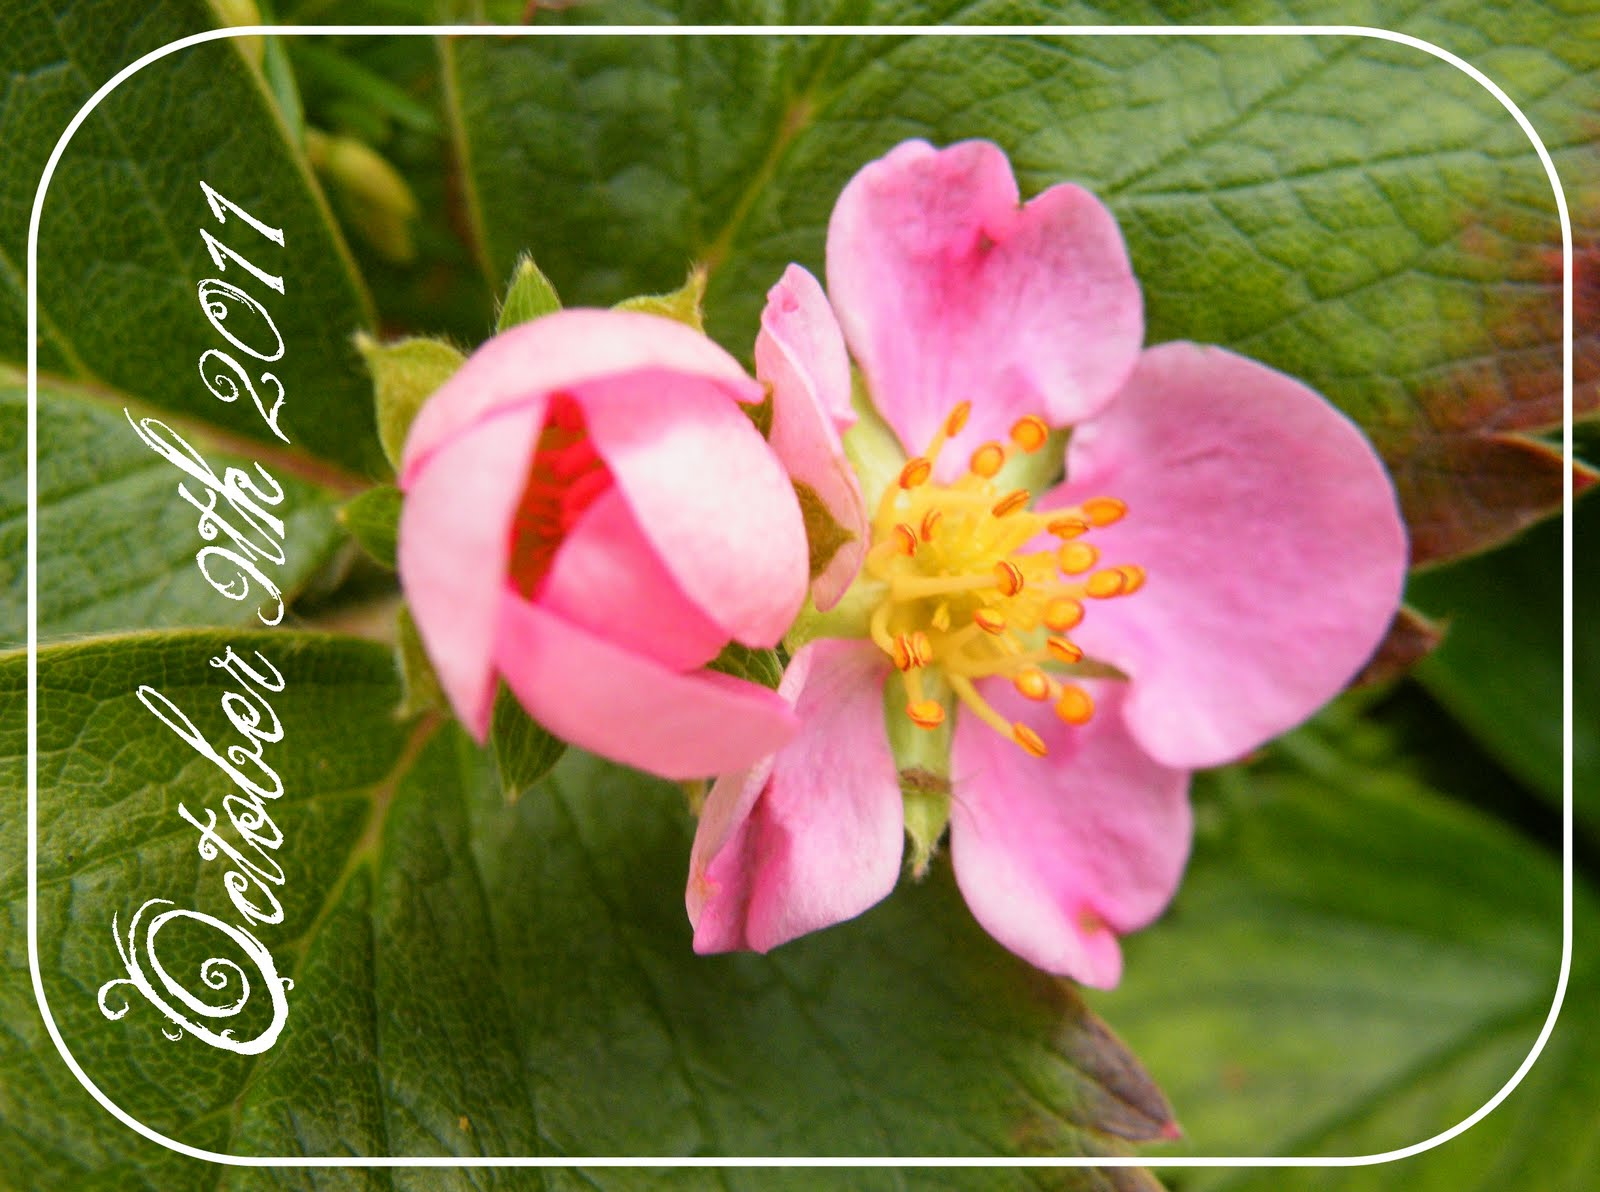 Marys musings natures calendar strawberry plant with pink flower natures calendar strawberry plant with pink flower mightylinksfo